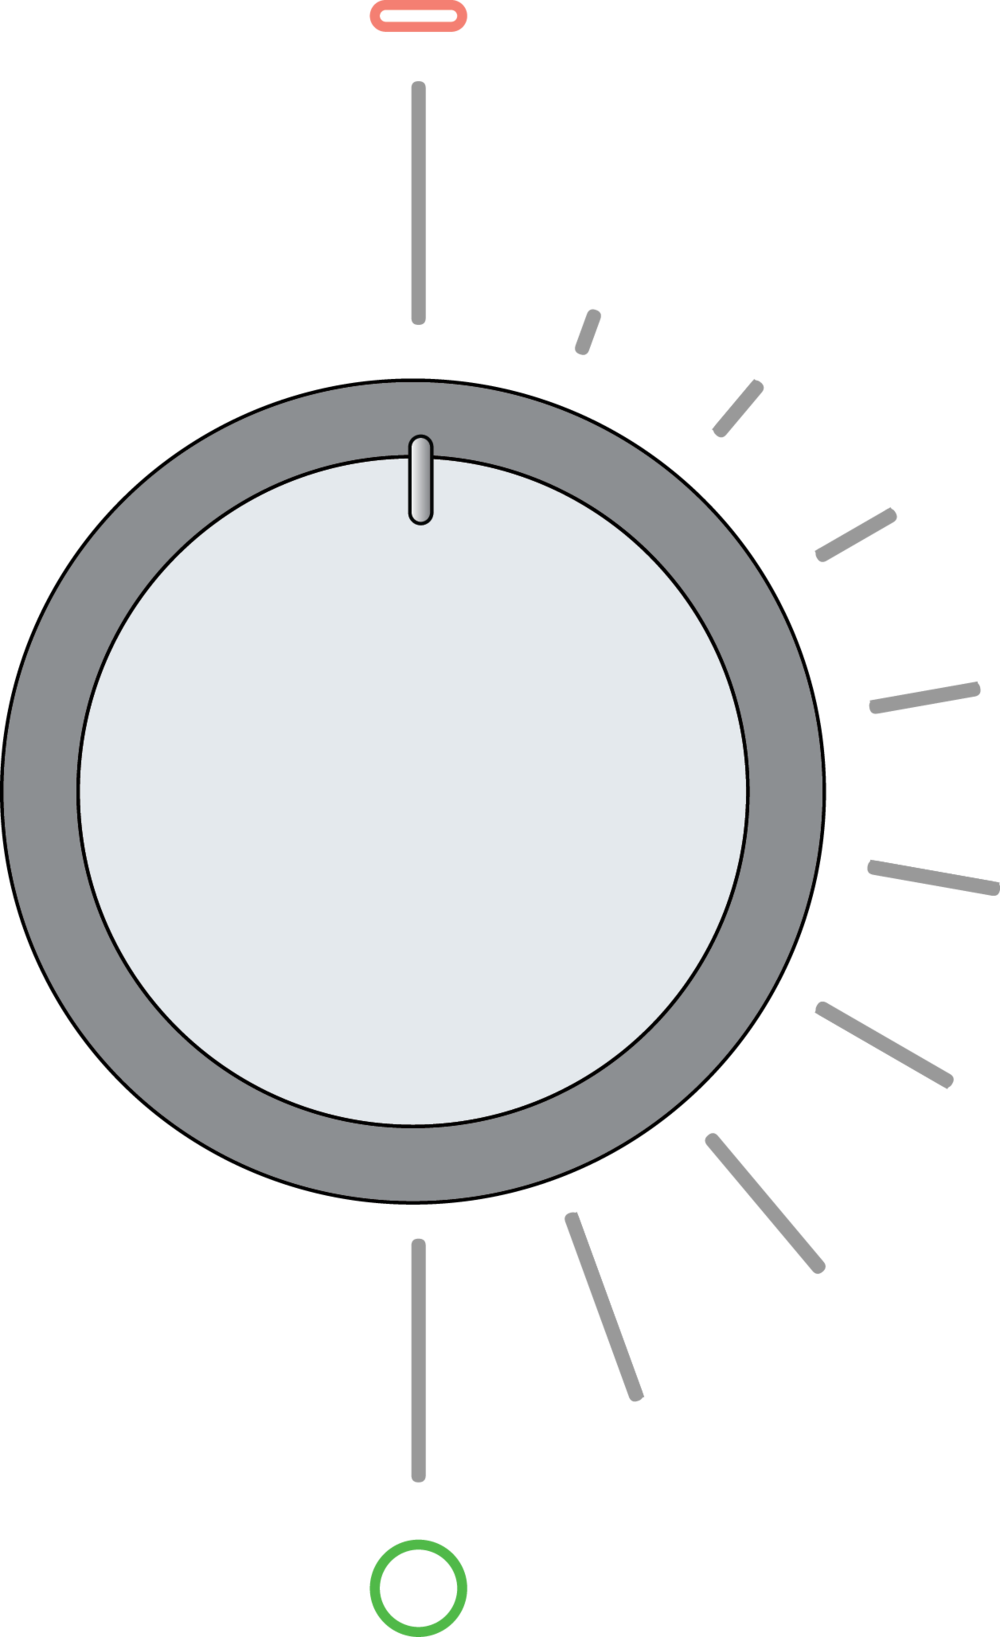 All-in-one dial